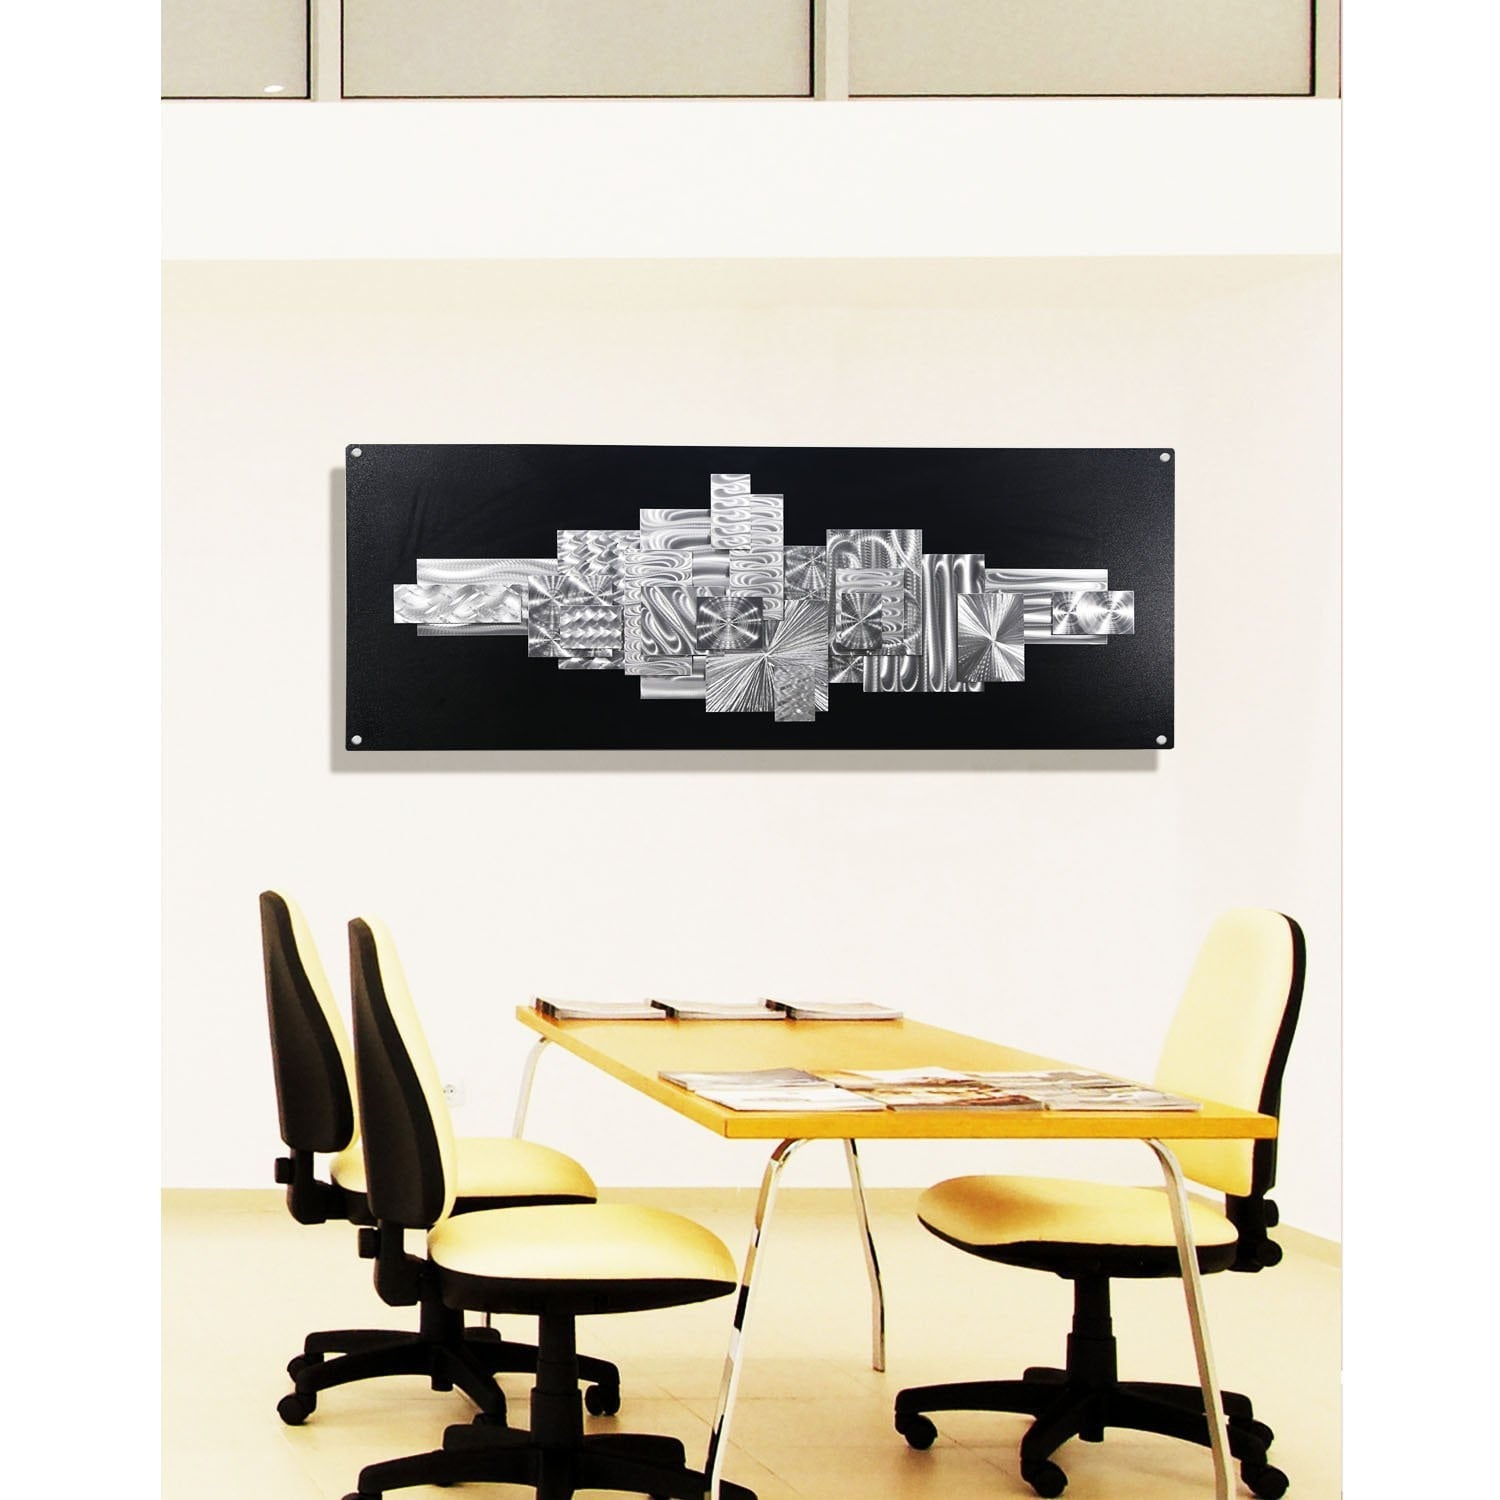 Statements2000 Black Silver Large Abstract Metal Wall Art Sculpture By Jon Allen Time Suspended 2